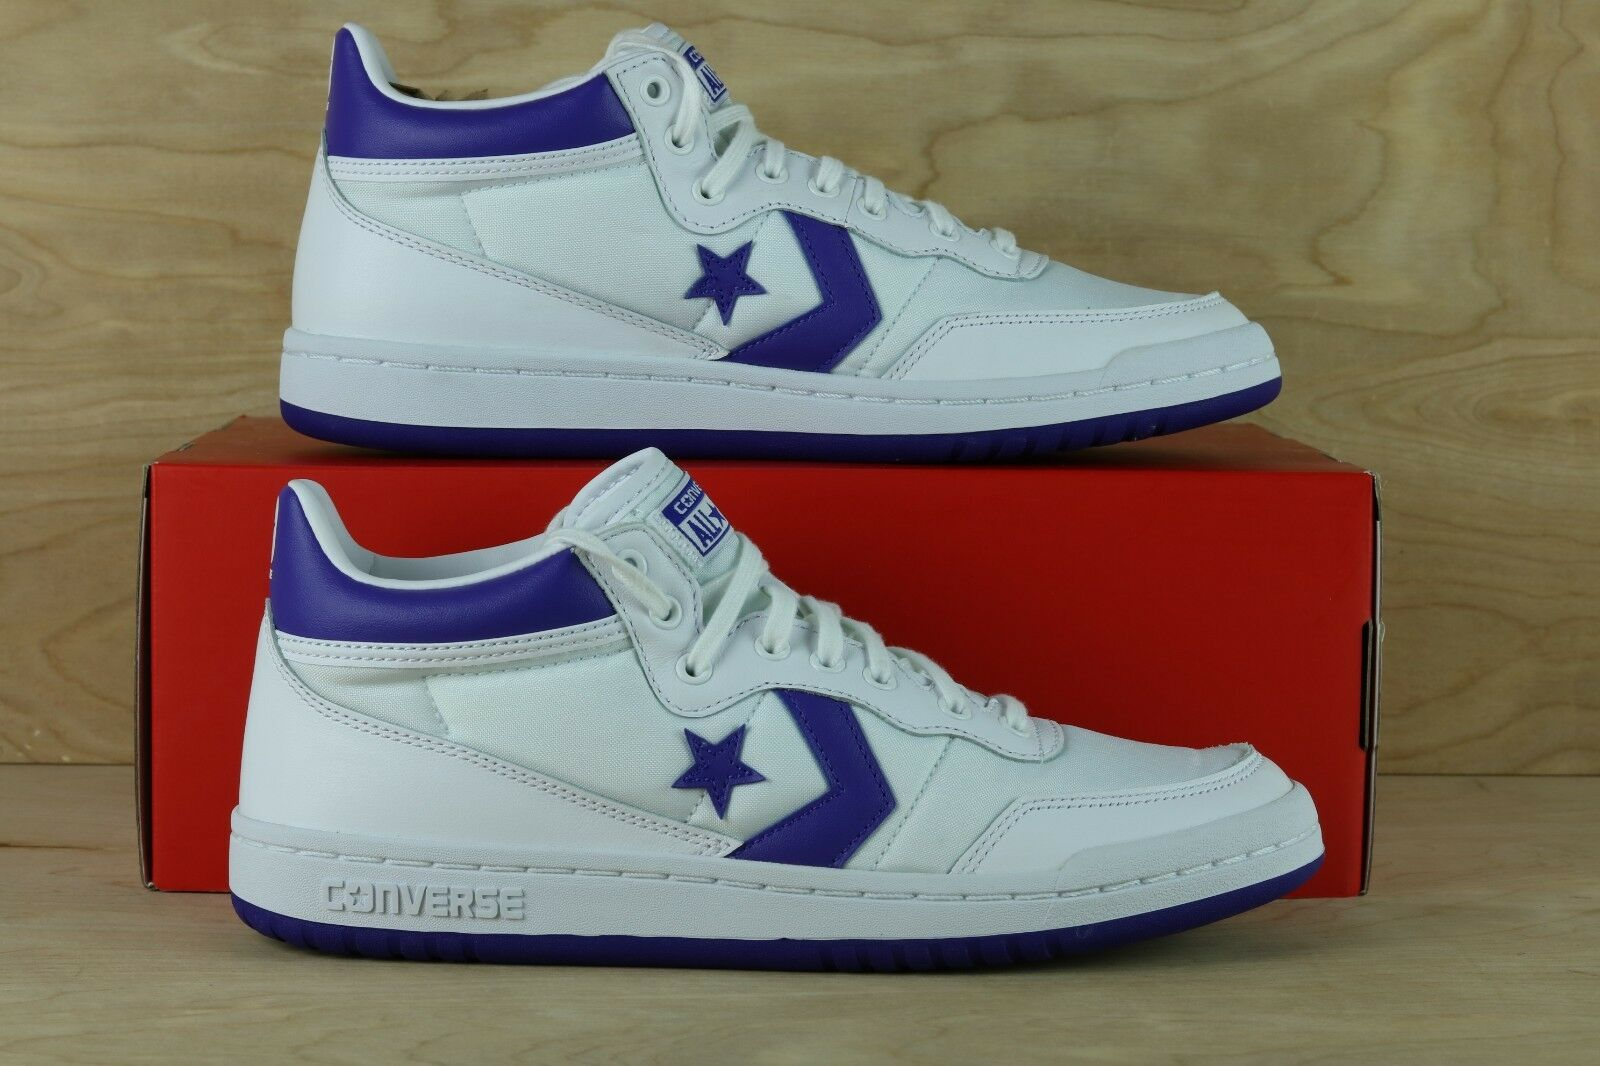 CONVERSE FASTBREAK 83 MID Blanc /CANDY GRAPE Homme SNEAKERS 156972C [ Multi